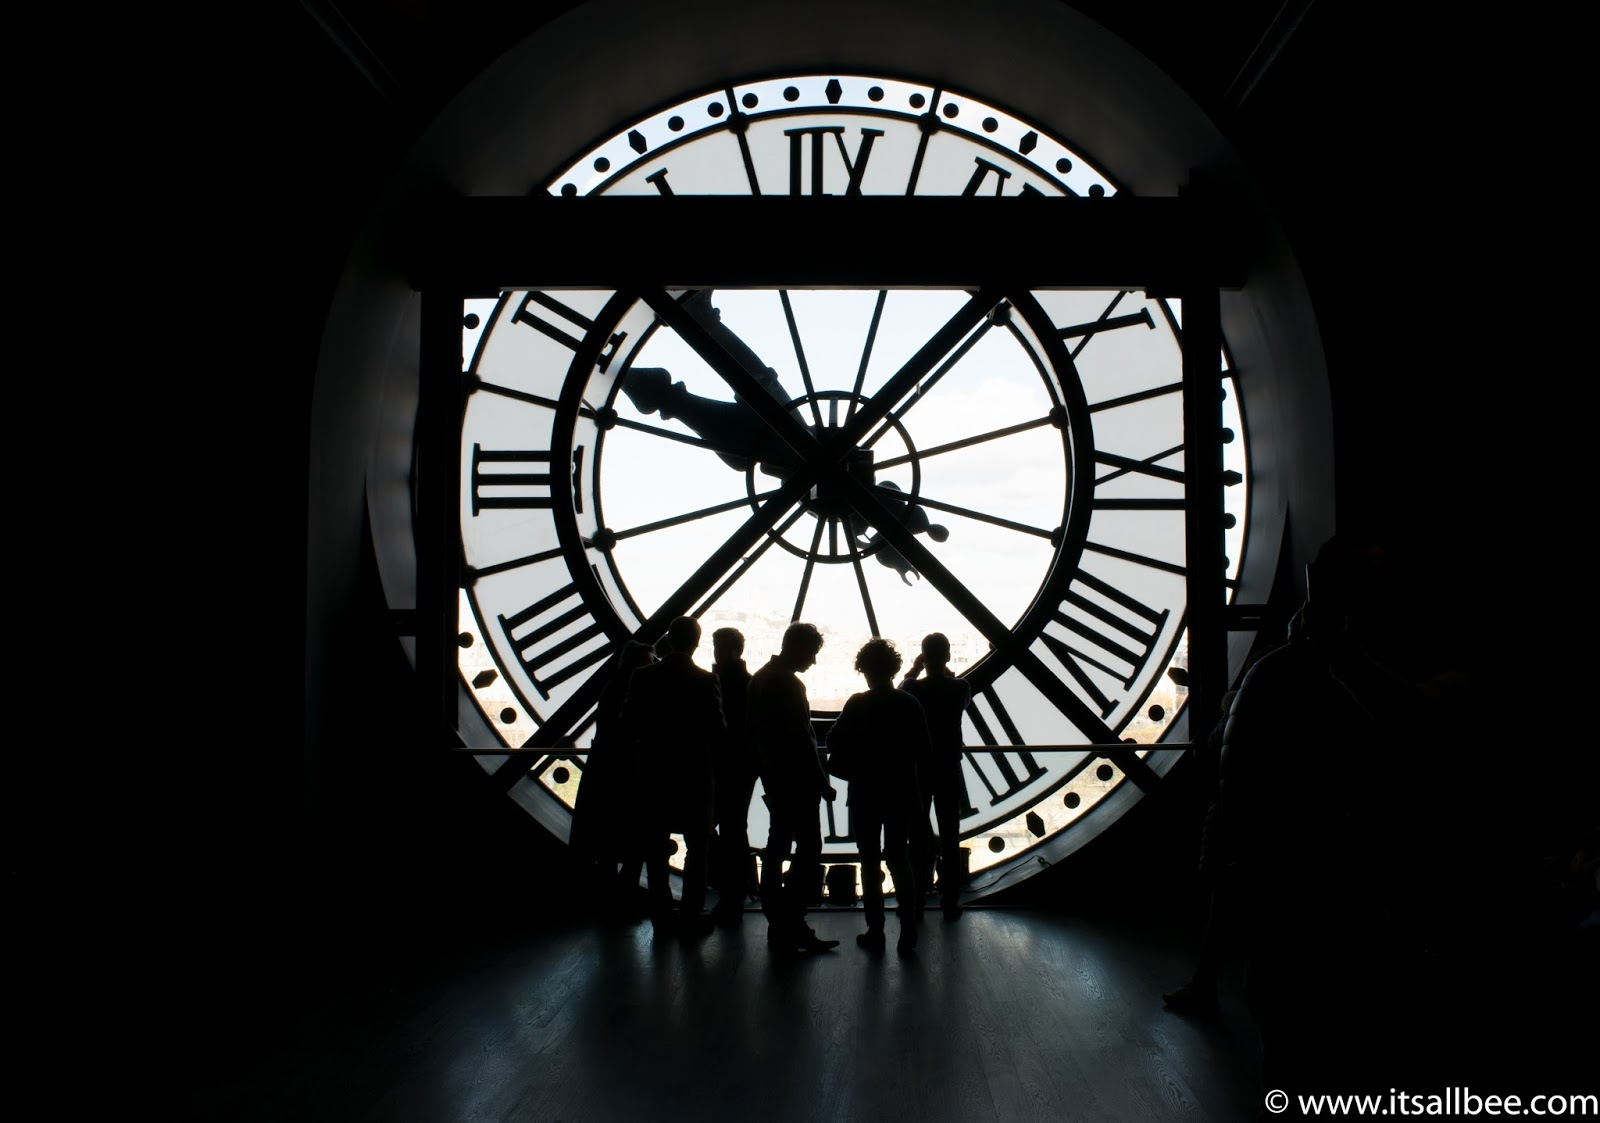 Behind the Clock - Musee d'Orsay - Paris. Photo by Bianca - www.itsallbee.com